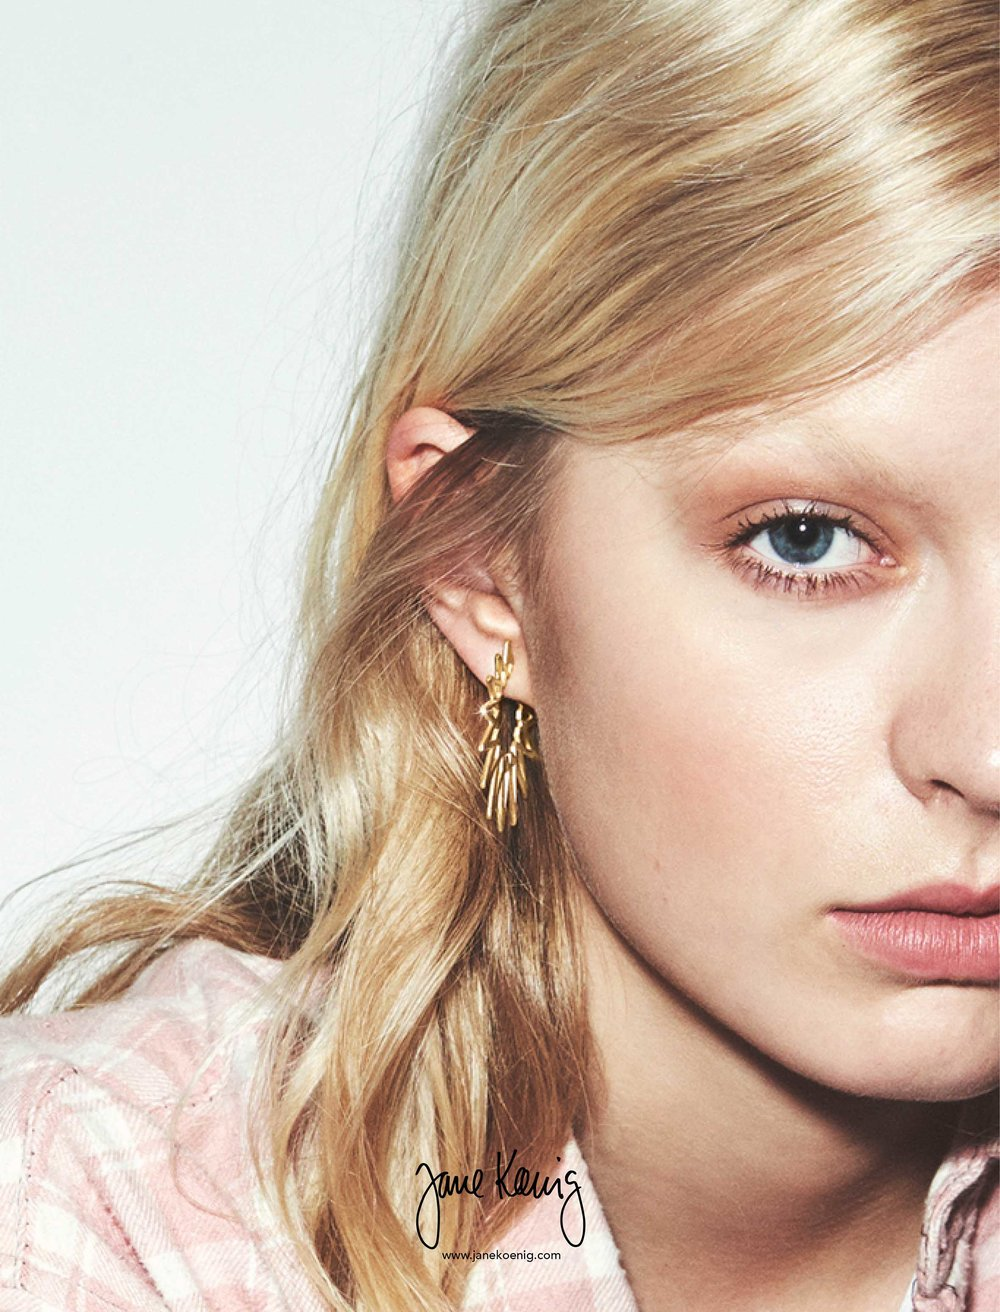 Sun Earrings from the new collection by Jane Kønig